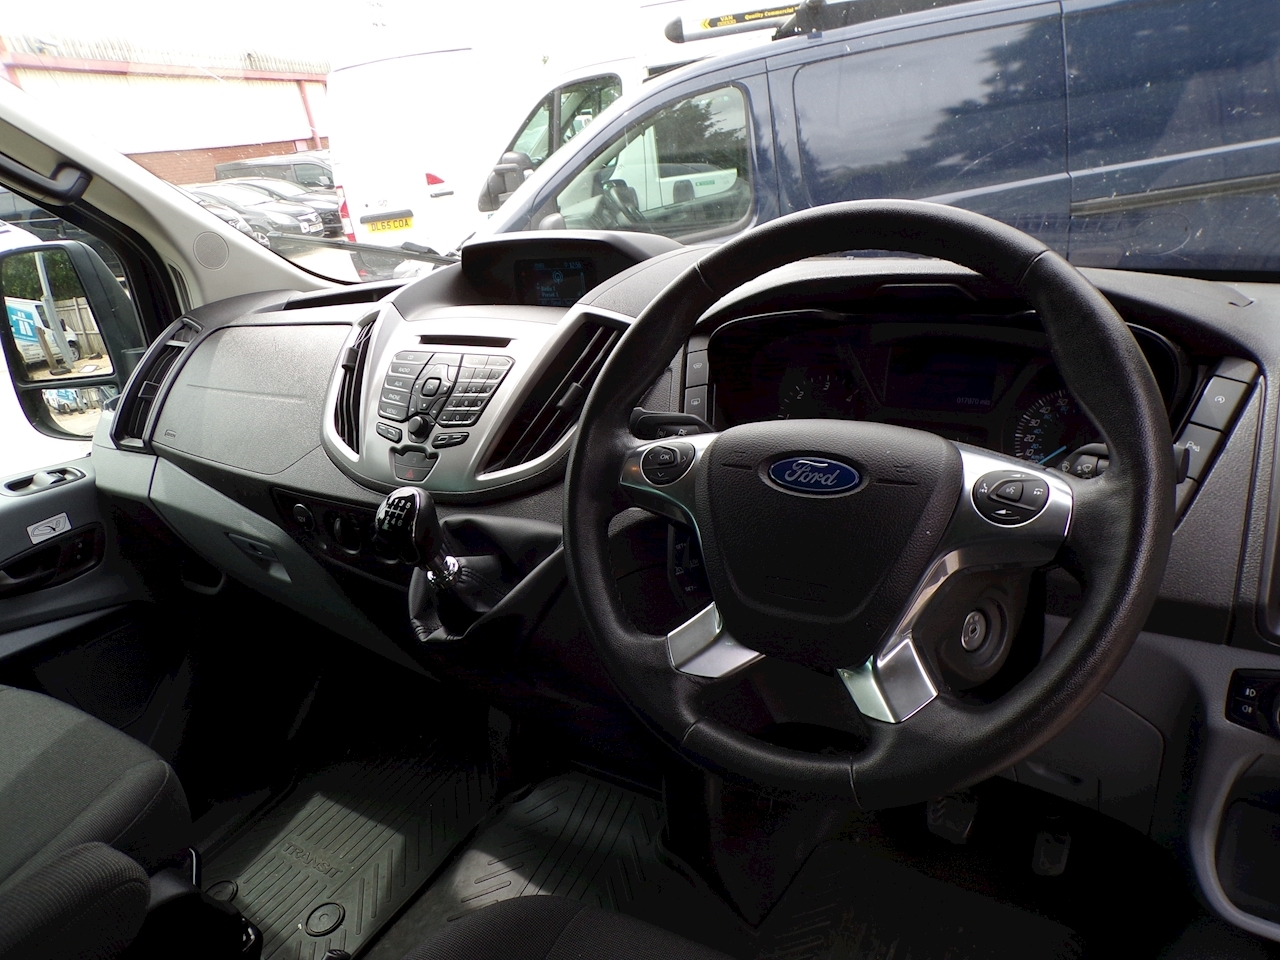 Ford Transit 17 Seat Trend, 125ps